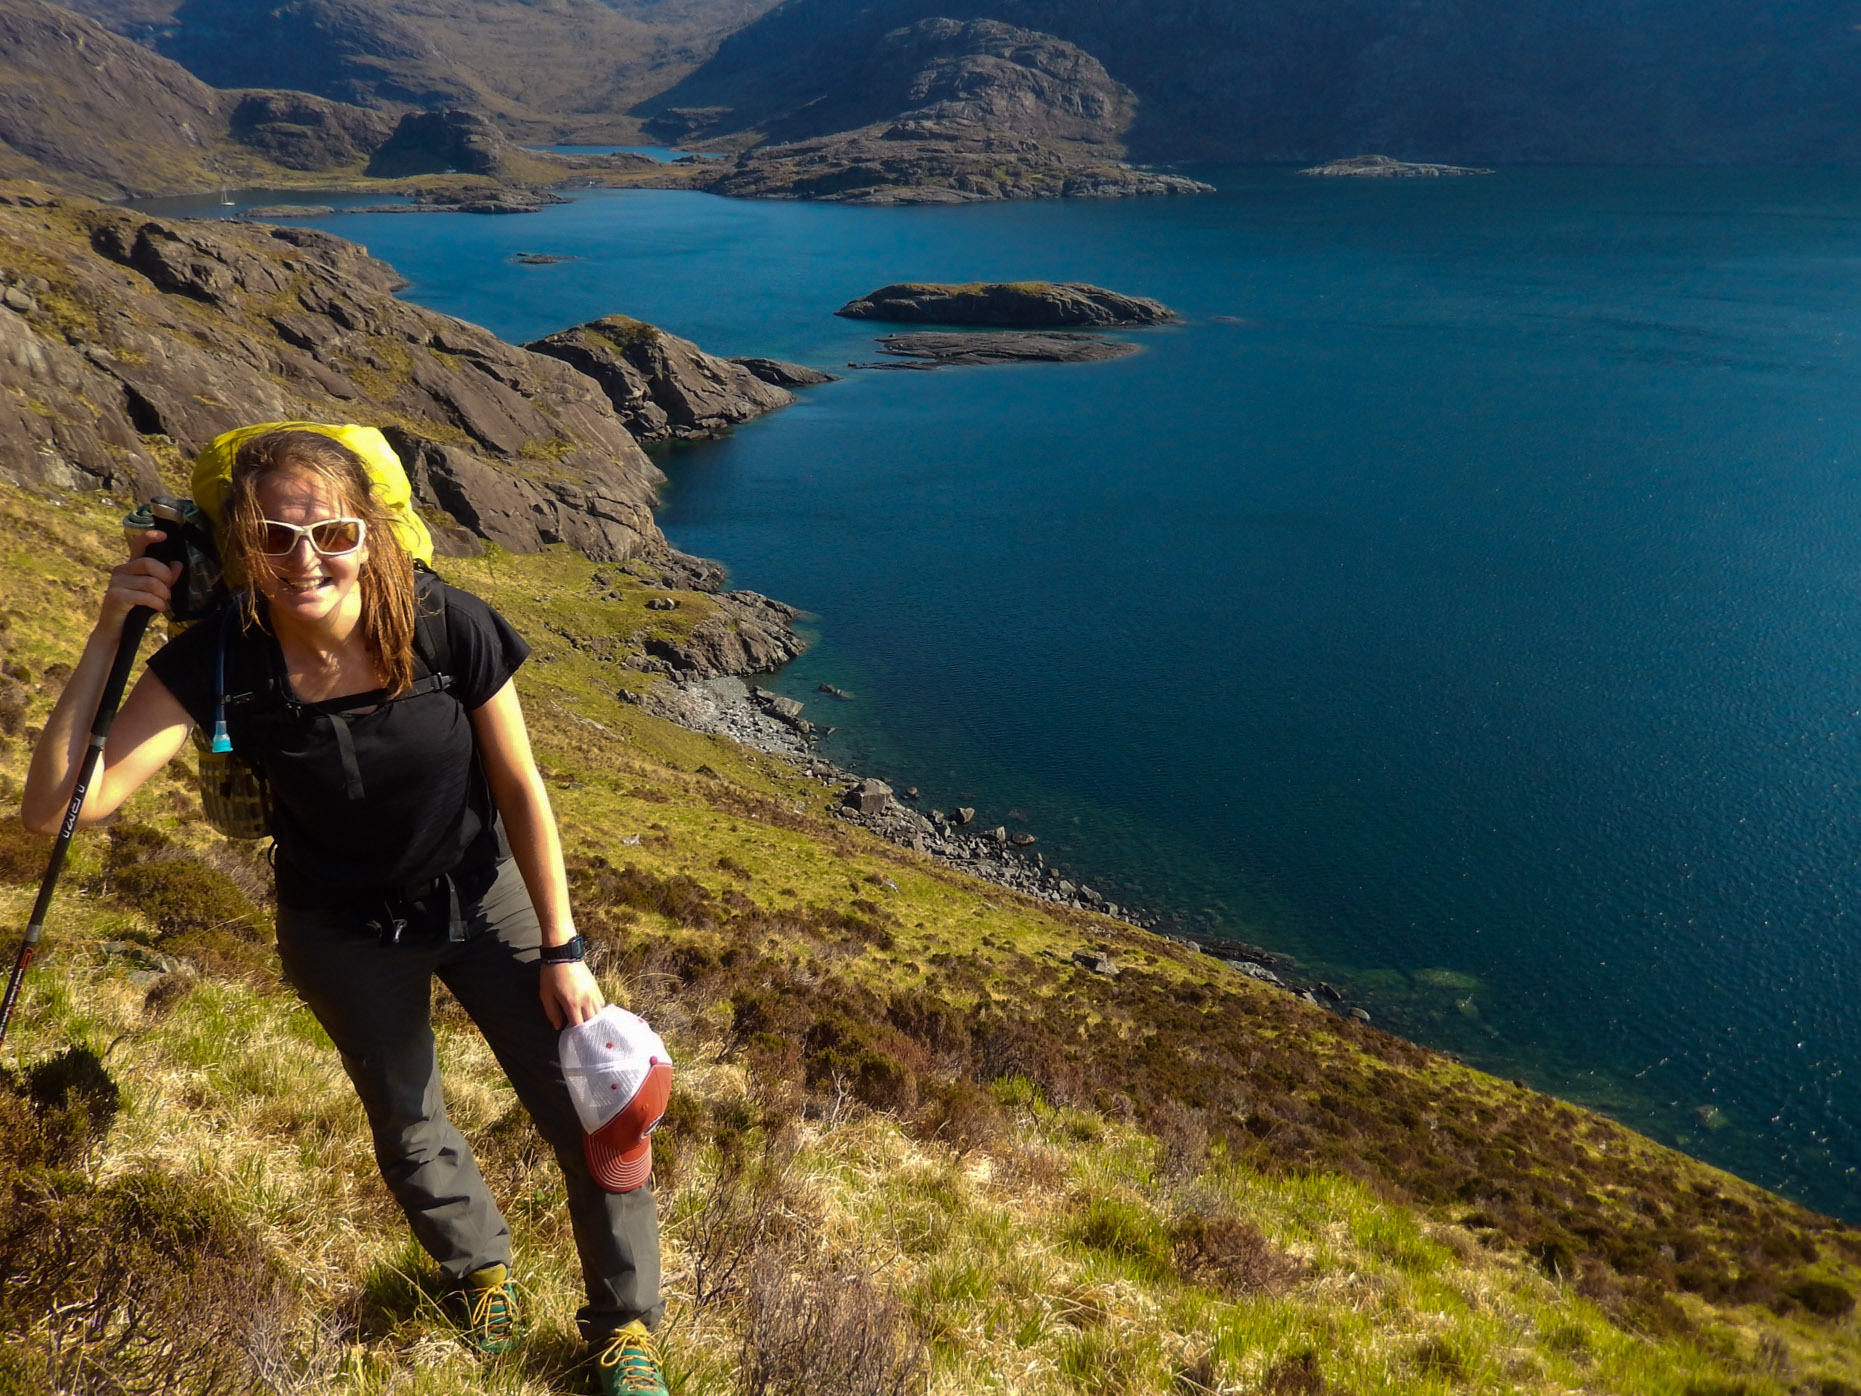 Fresh off the boat at the foot of Gars-bheinn